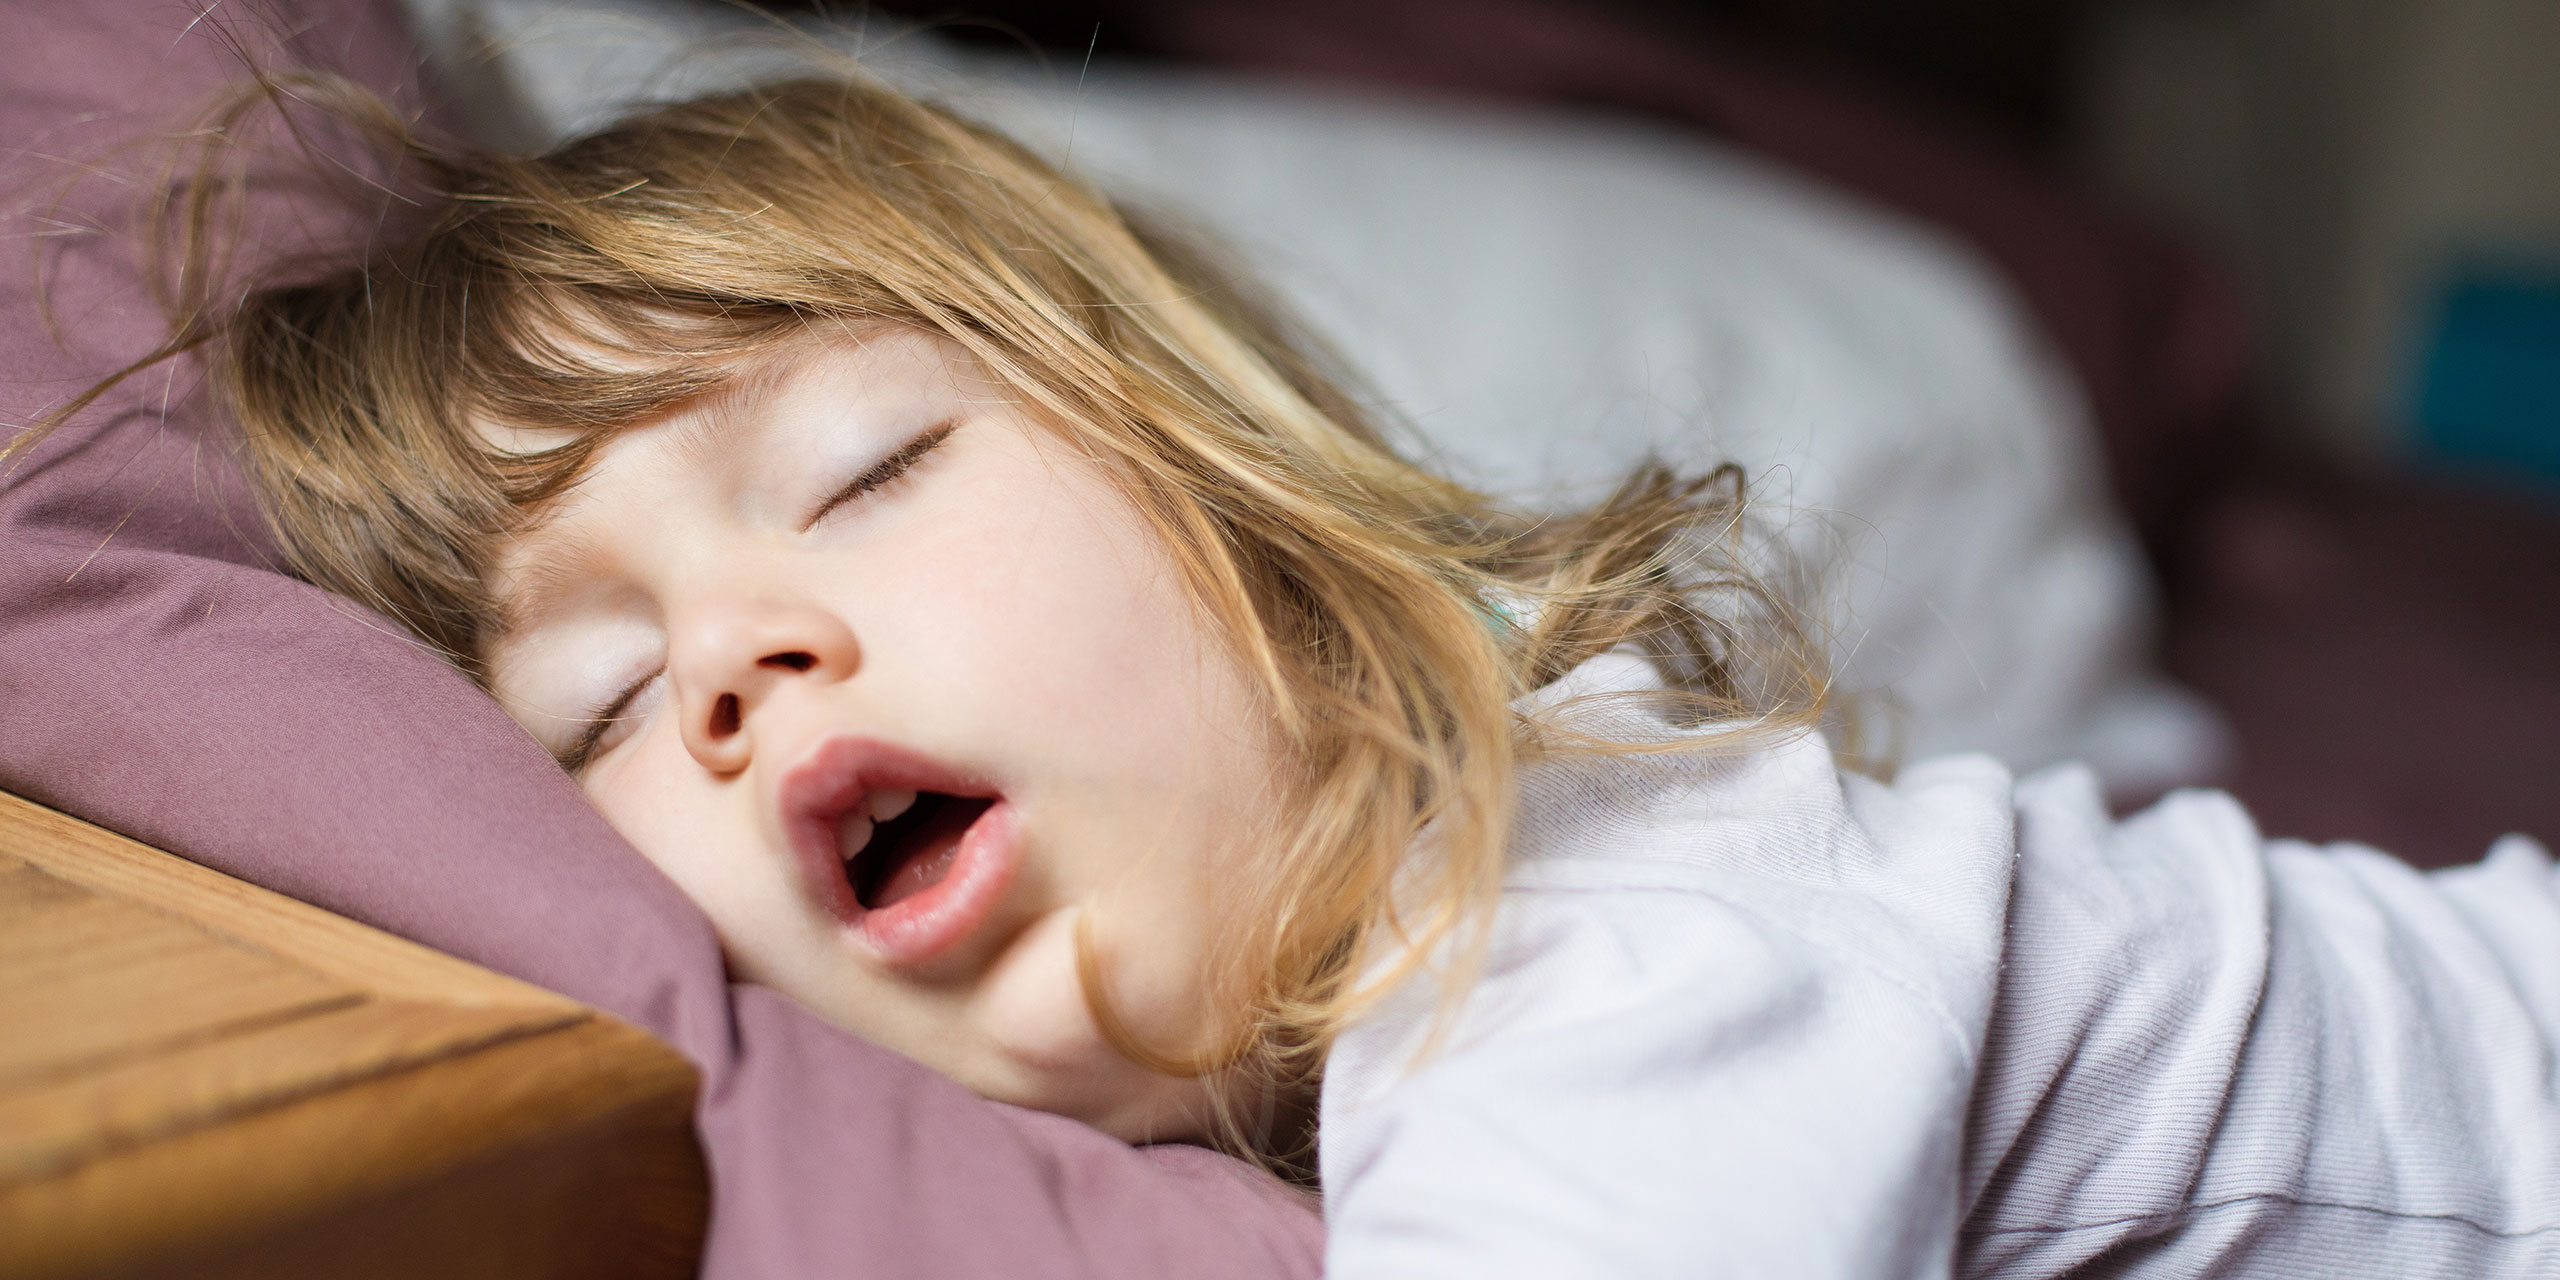 Sleeping Girl; Courtesy of Quintanilla/Shutterstock.com